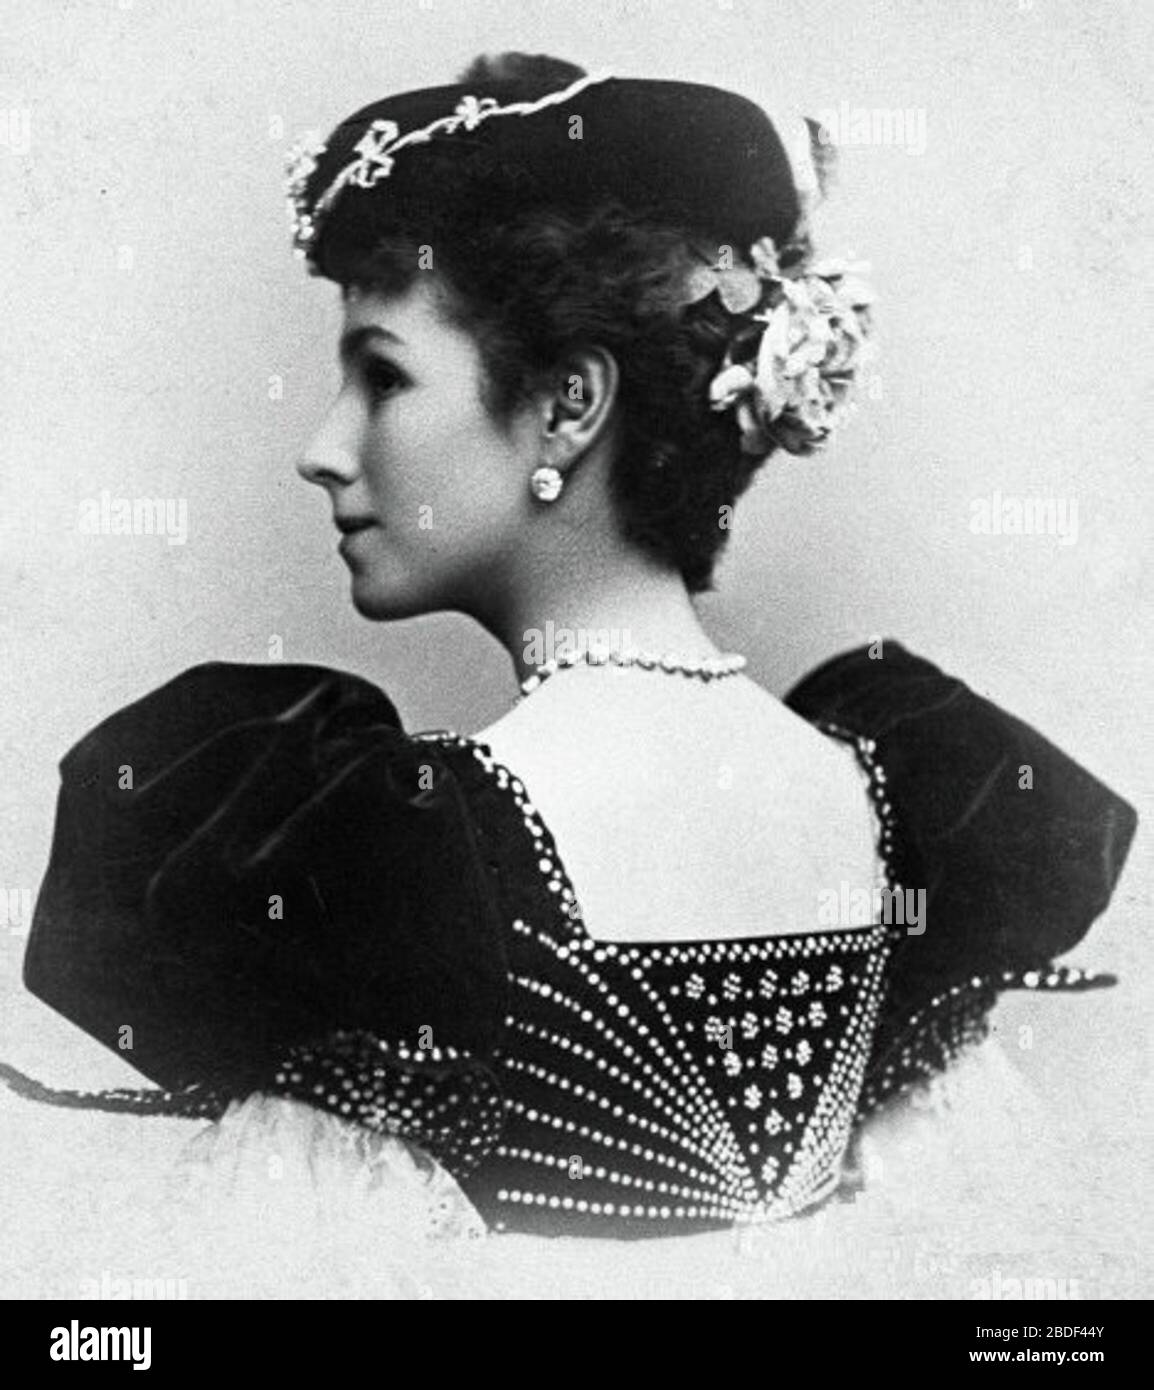 """""""Photographic postcard of Mathilde Felixovna Kschessinskaya (1872-1971), costumed for the Spanish dance.; 1897; The photograph was taken by an unknown photographer at the photography studio of the Imperial Mariinsky Theatre. I (MrLopez2681) scanned the photo from the book The Great Russian Dancers by Gennady Smakov. Knapf. 1984.; Unknown photographer. Photography studio of the Imperial Mariinsky Theatre. St. Petersburg, Russian Empire.; """" Stock Photo"""